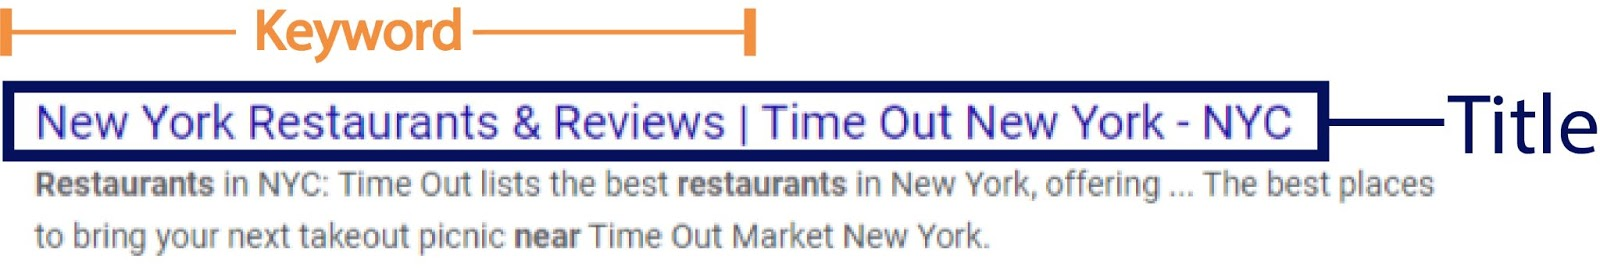 Small business SEO services headline and keyword SERP example.